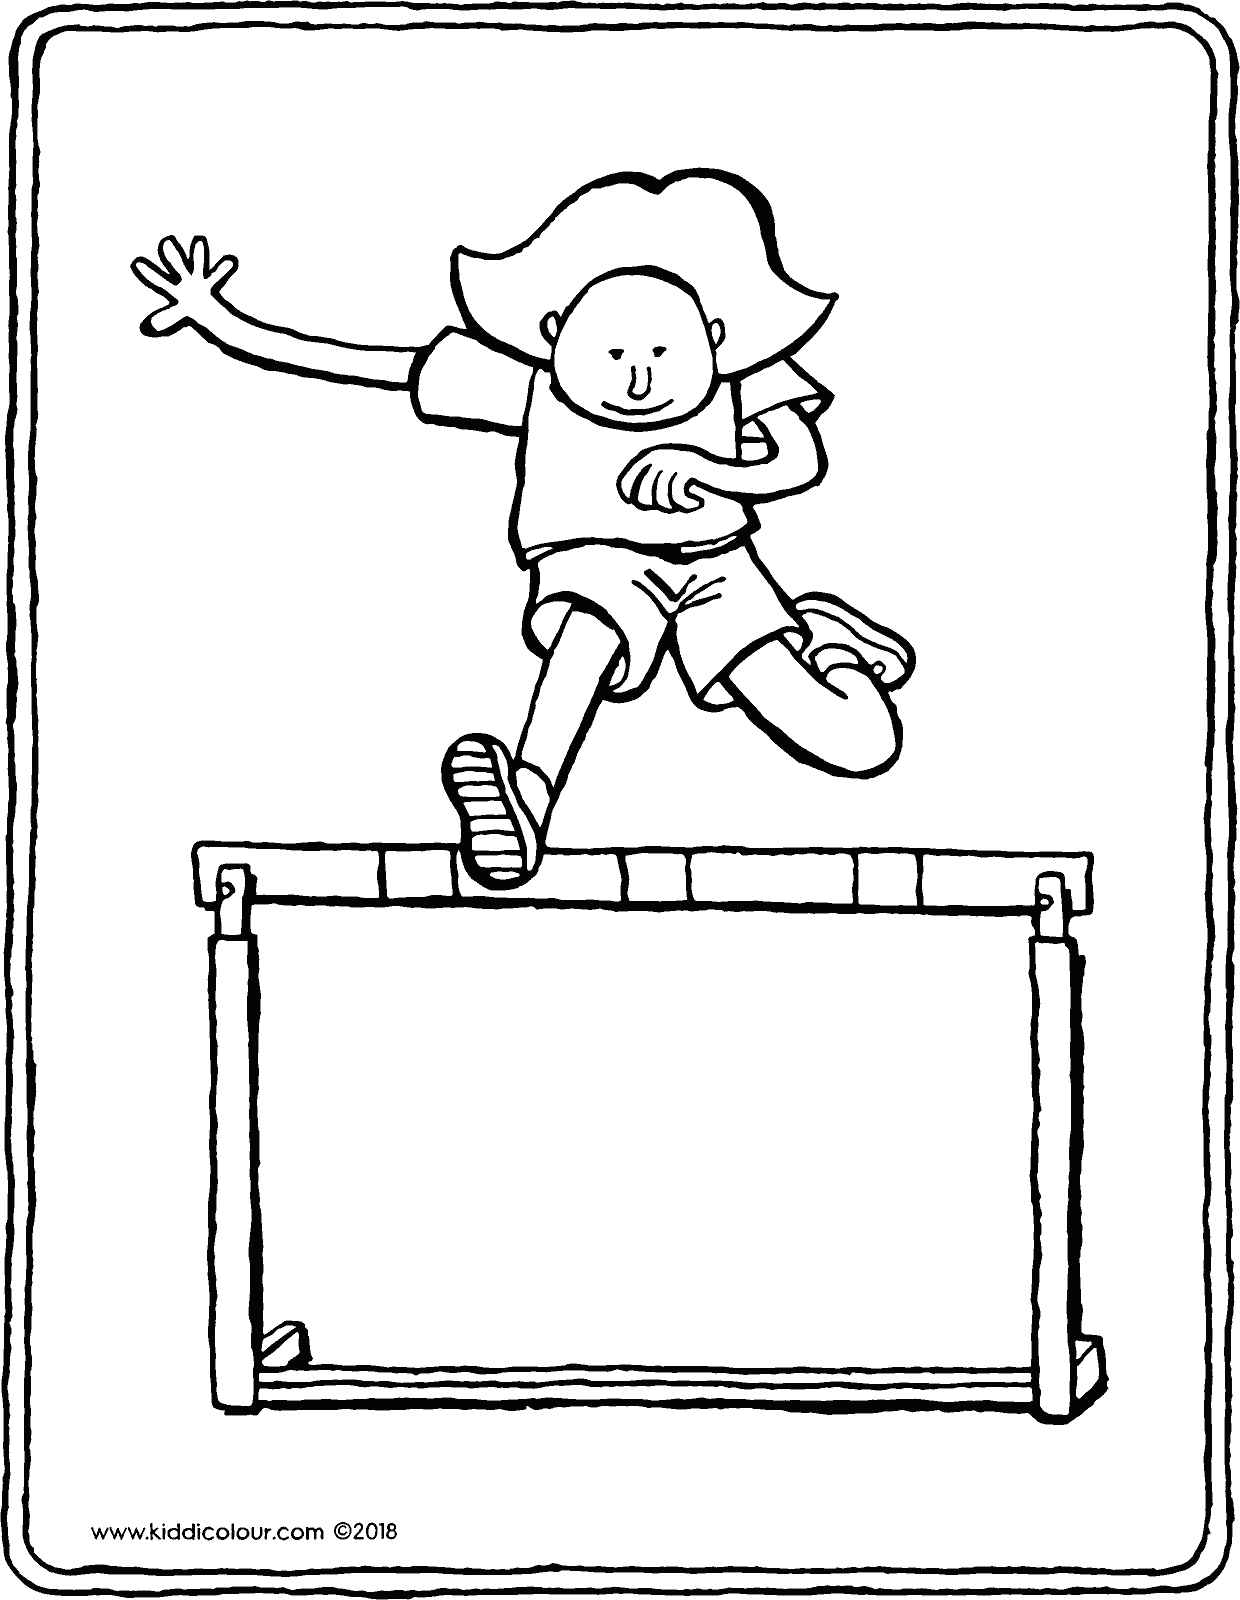 Emma jumping over a hurdle colouring page drawing picture 01V